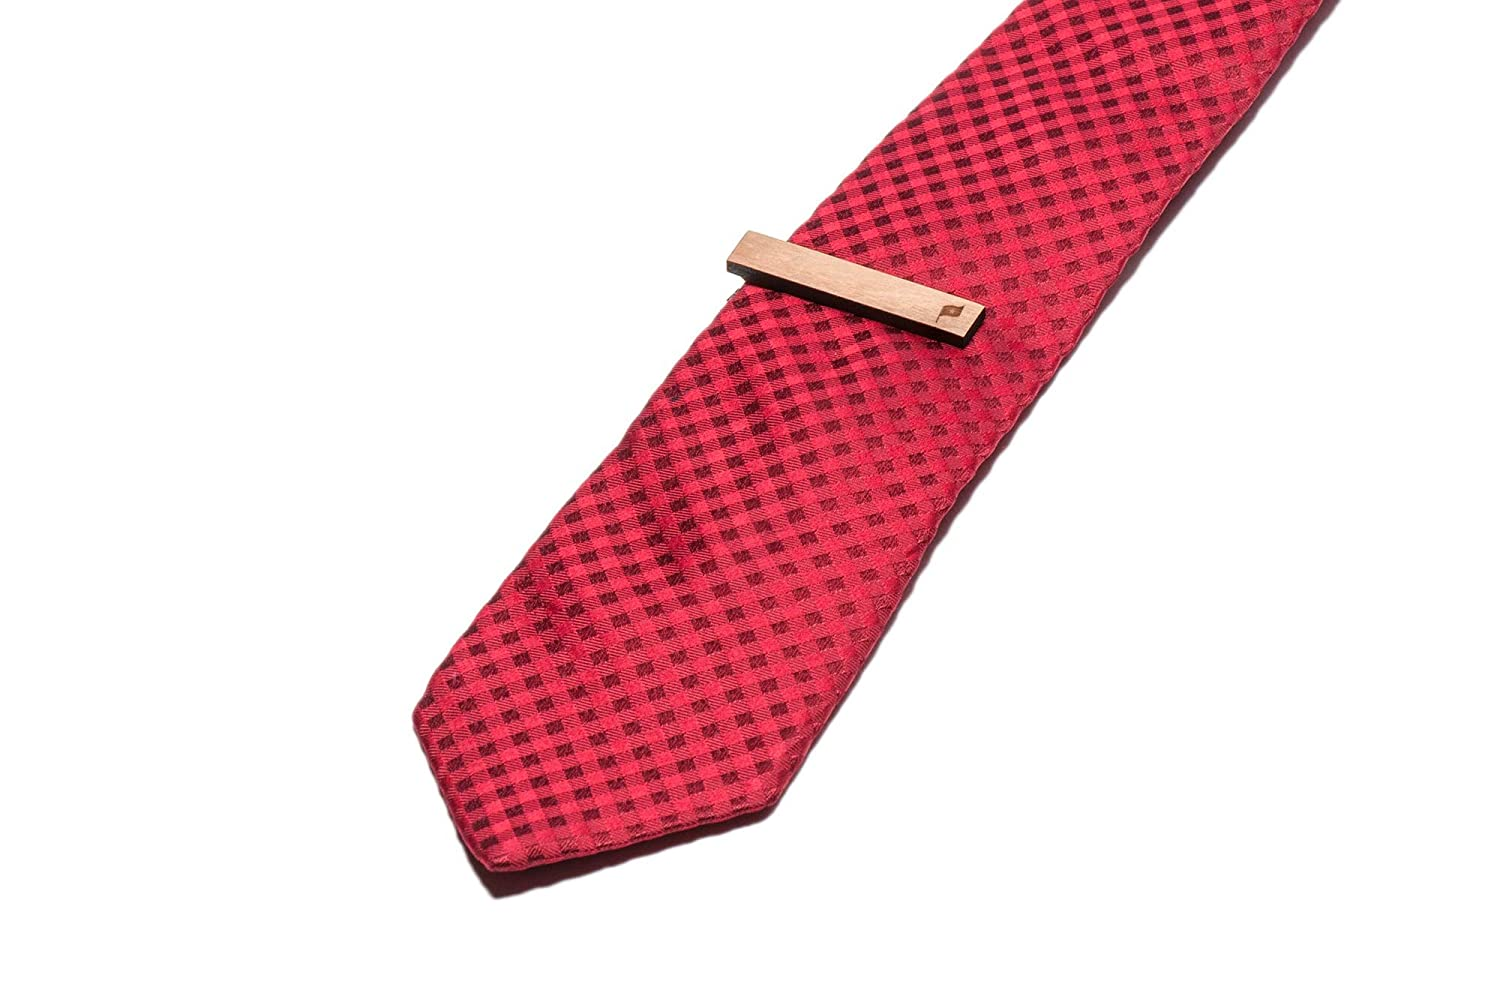 Cherry Wood Tie Bar Engraved in The USA Wooden Accessories Company Wooden Tie Clips with Laser Engraved Flag of Morocco Design